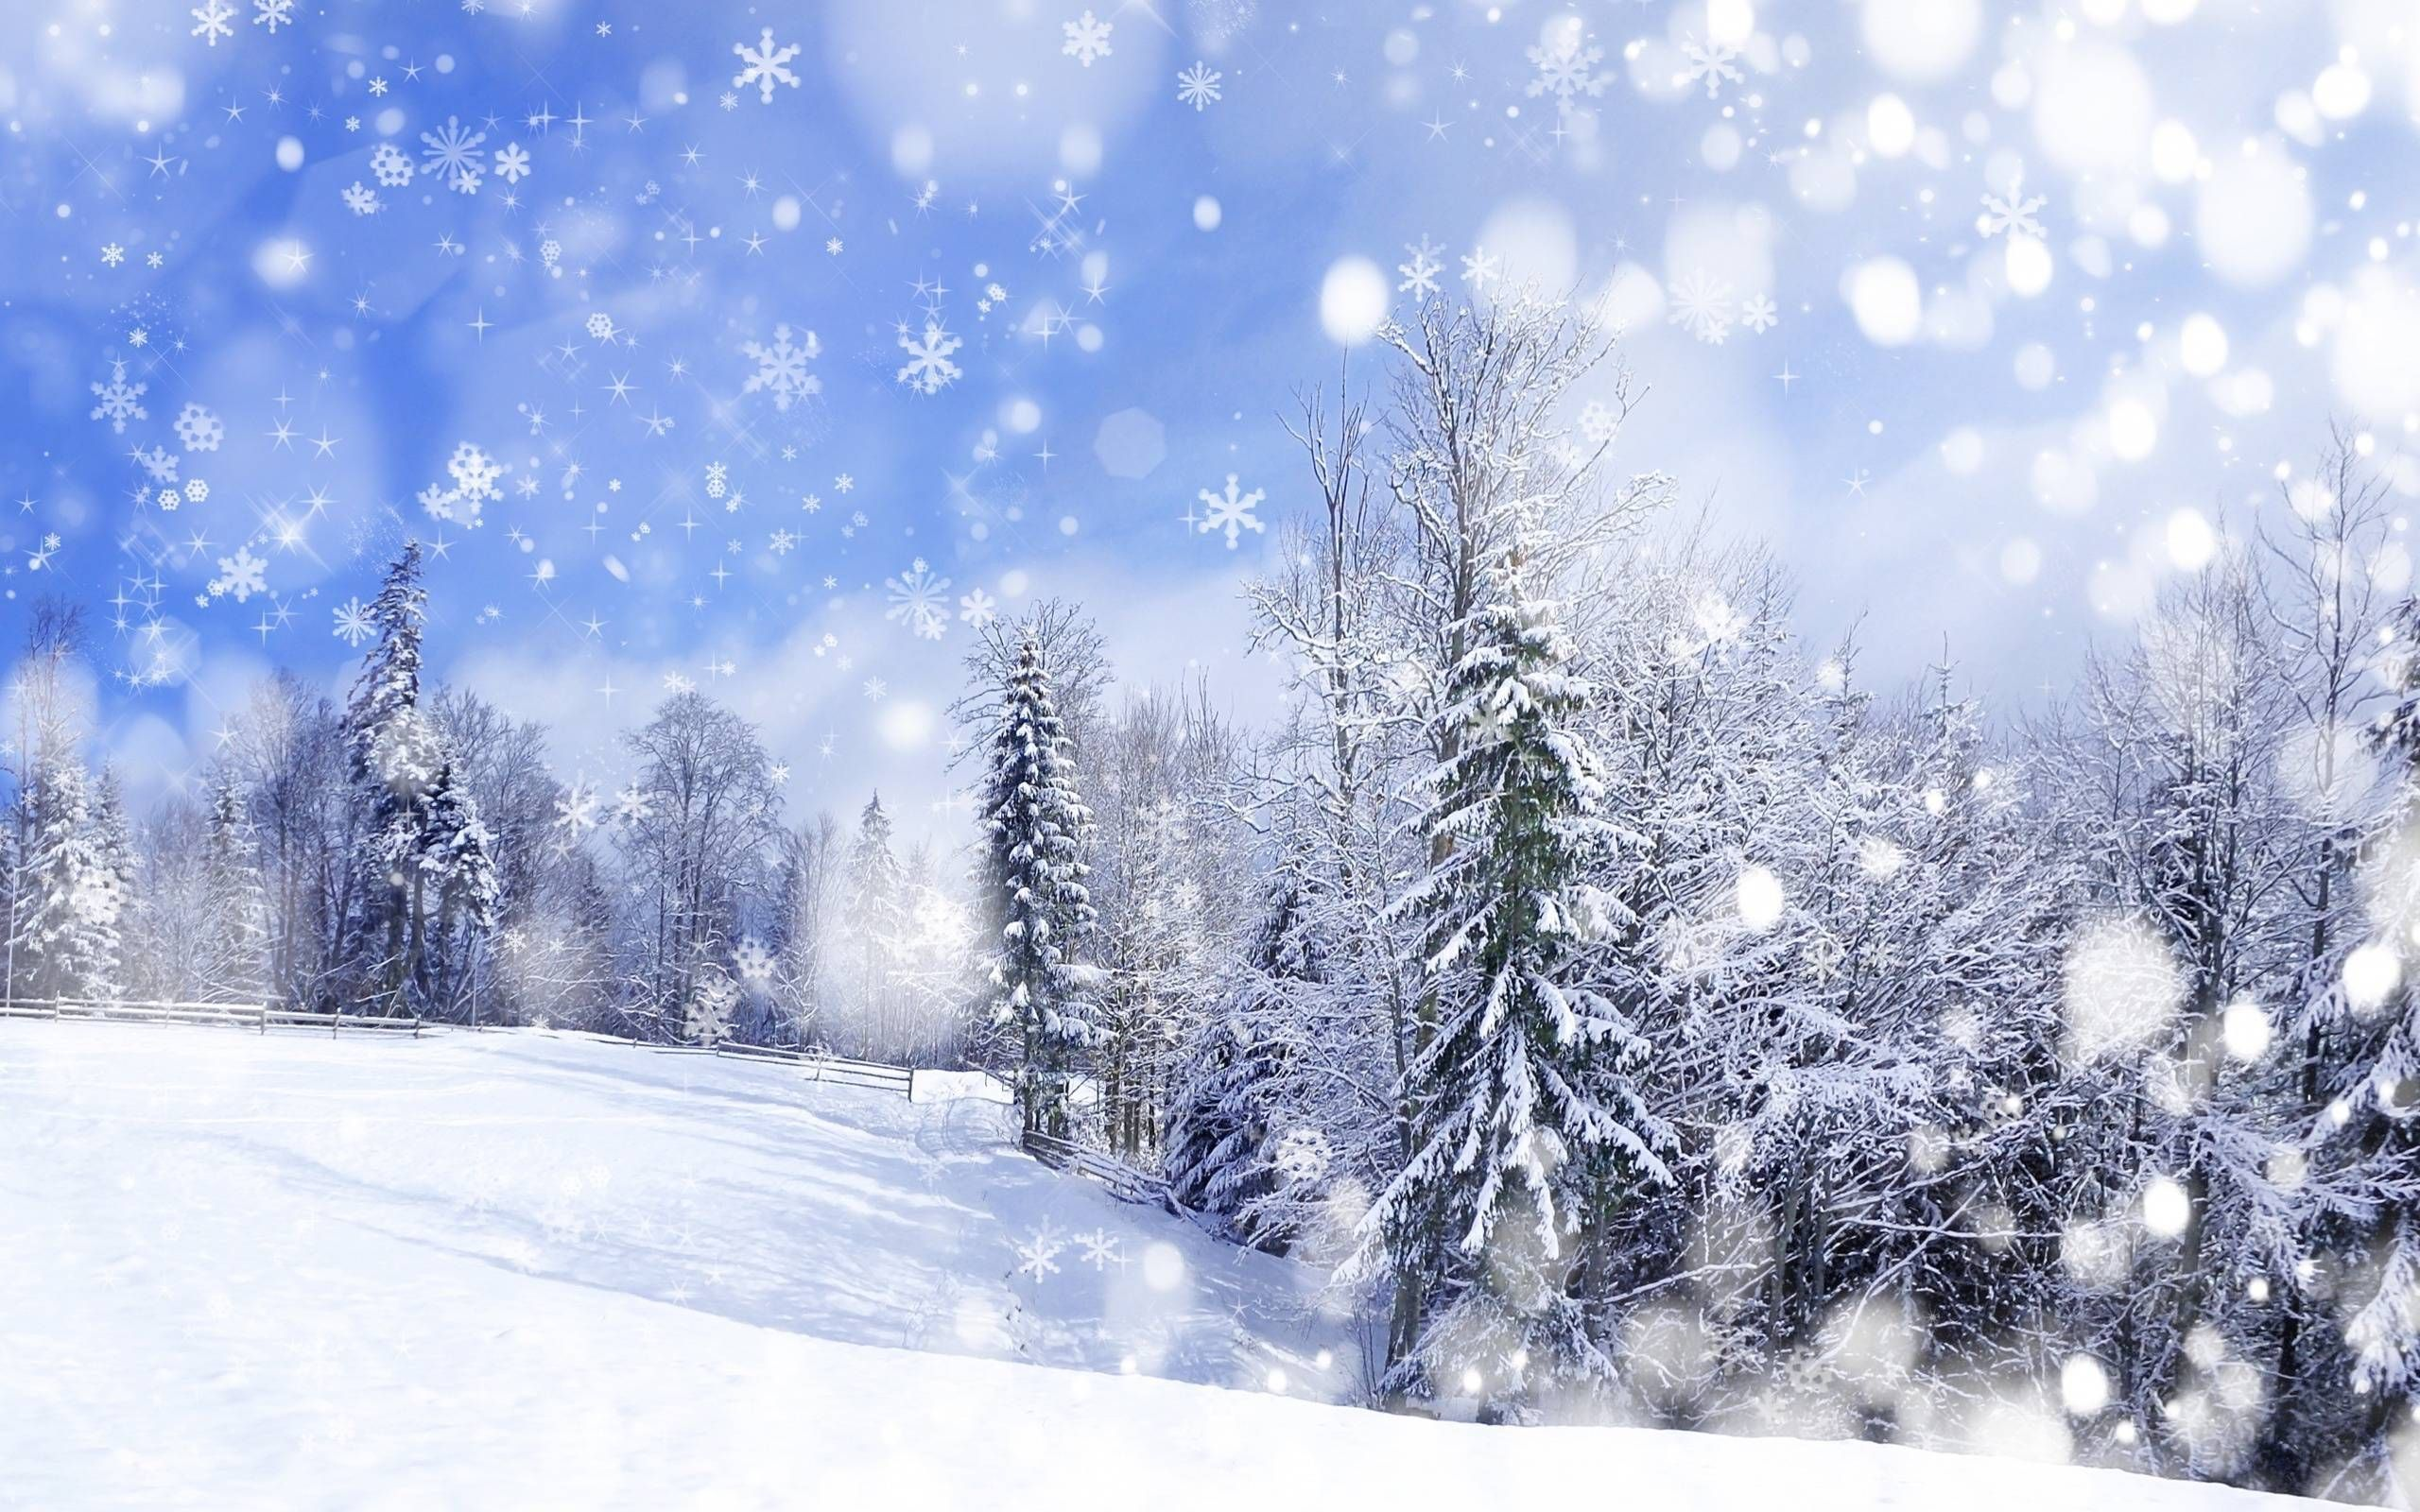 Anime Winter Scenery Wallpaper 9 | Anime Winter Scenery Wallpaper ...